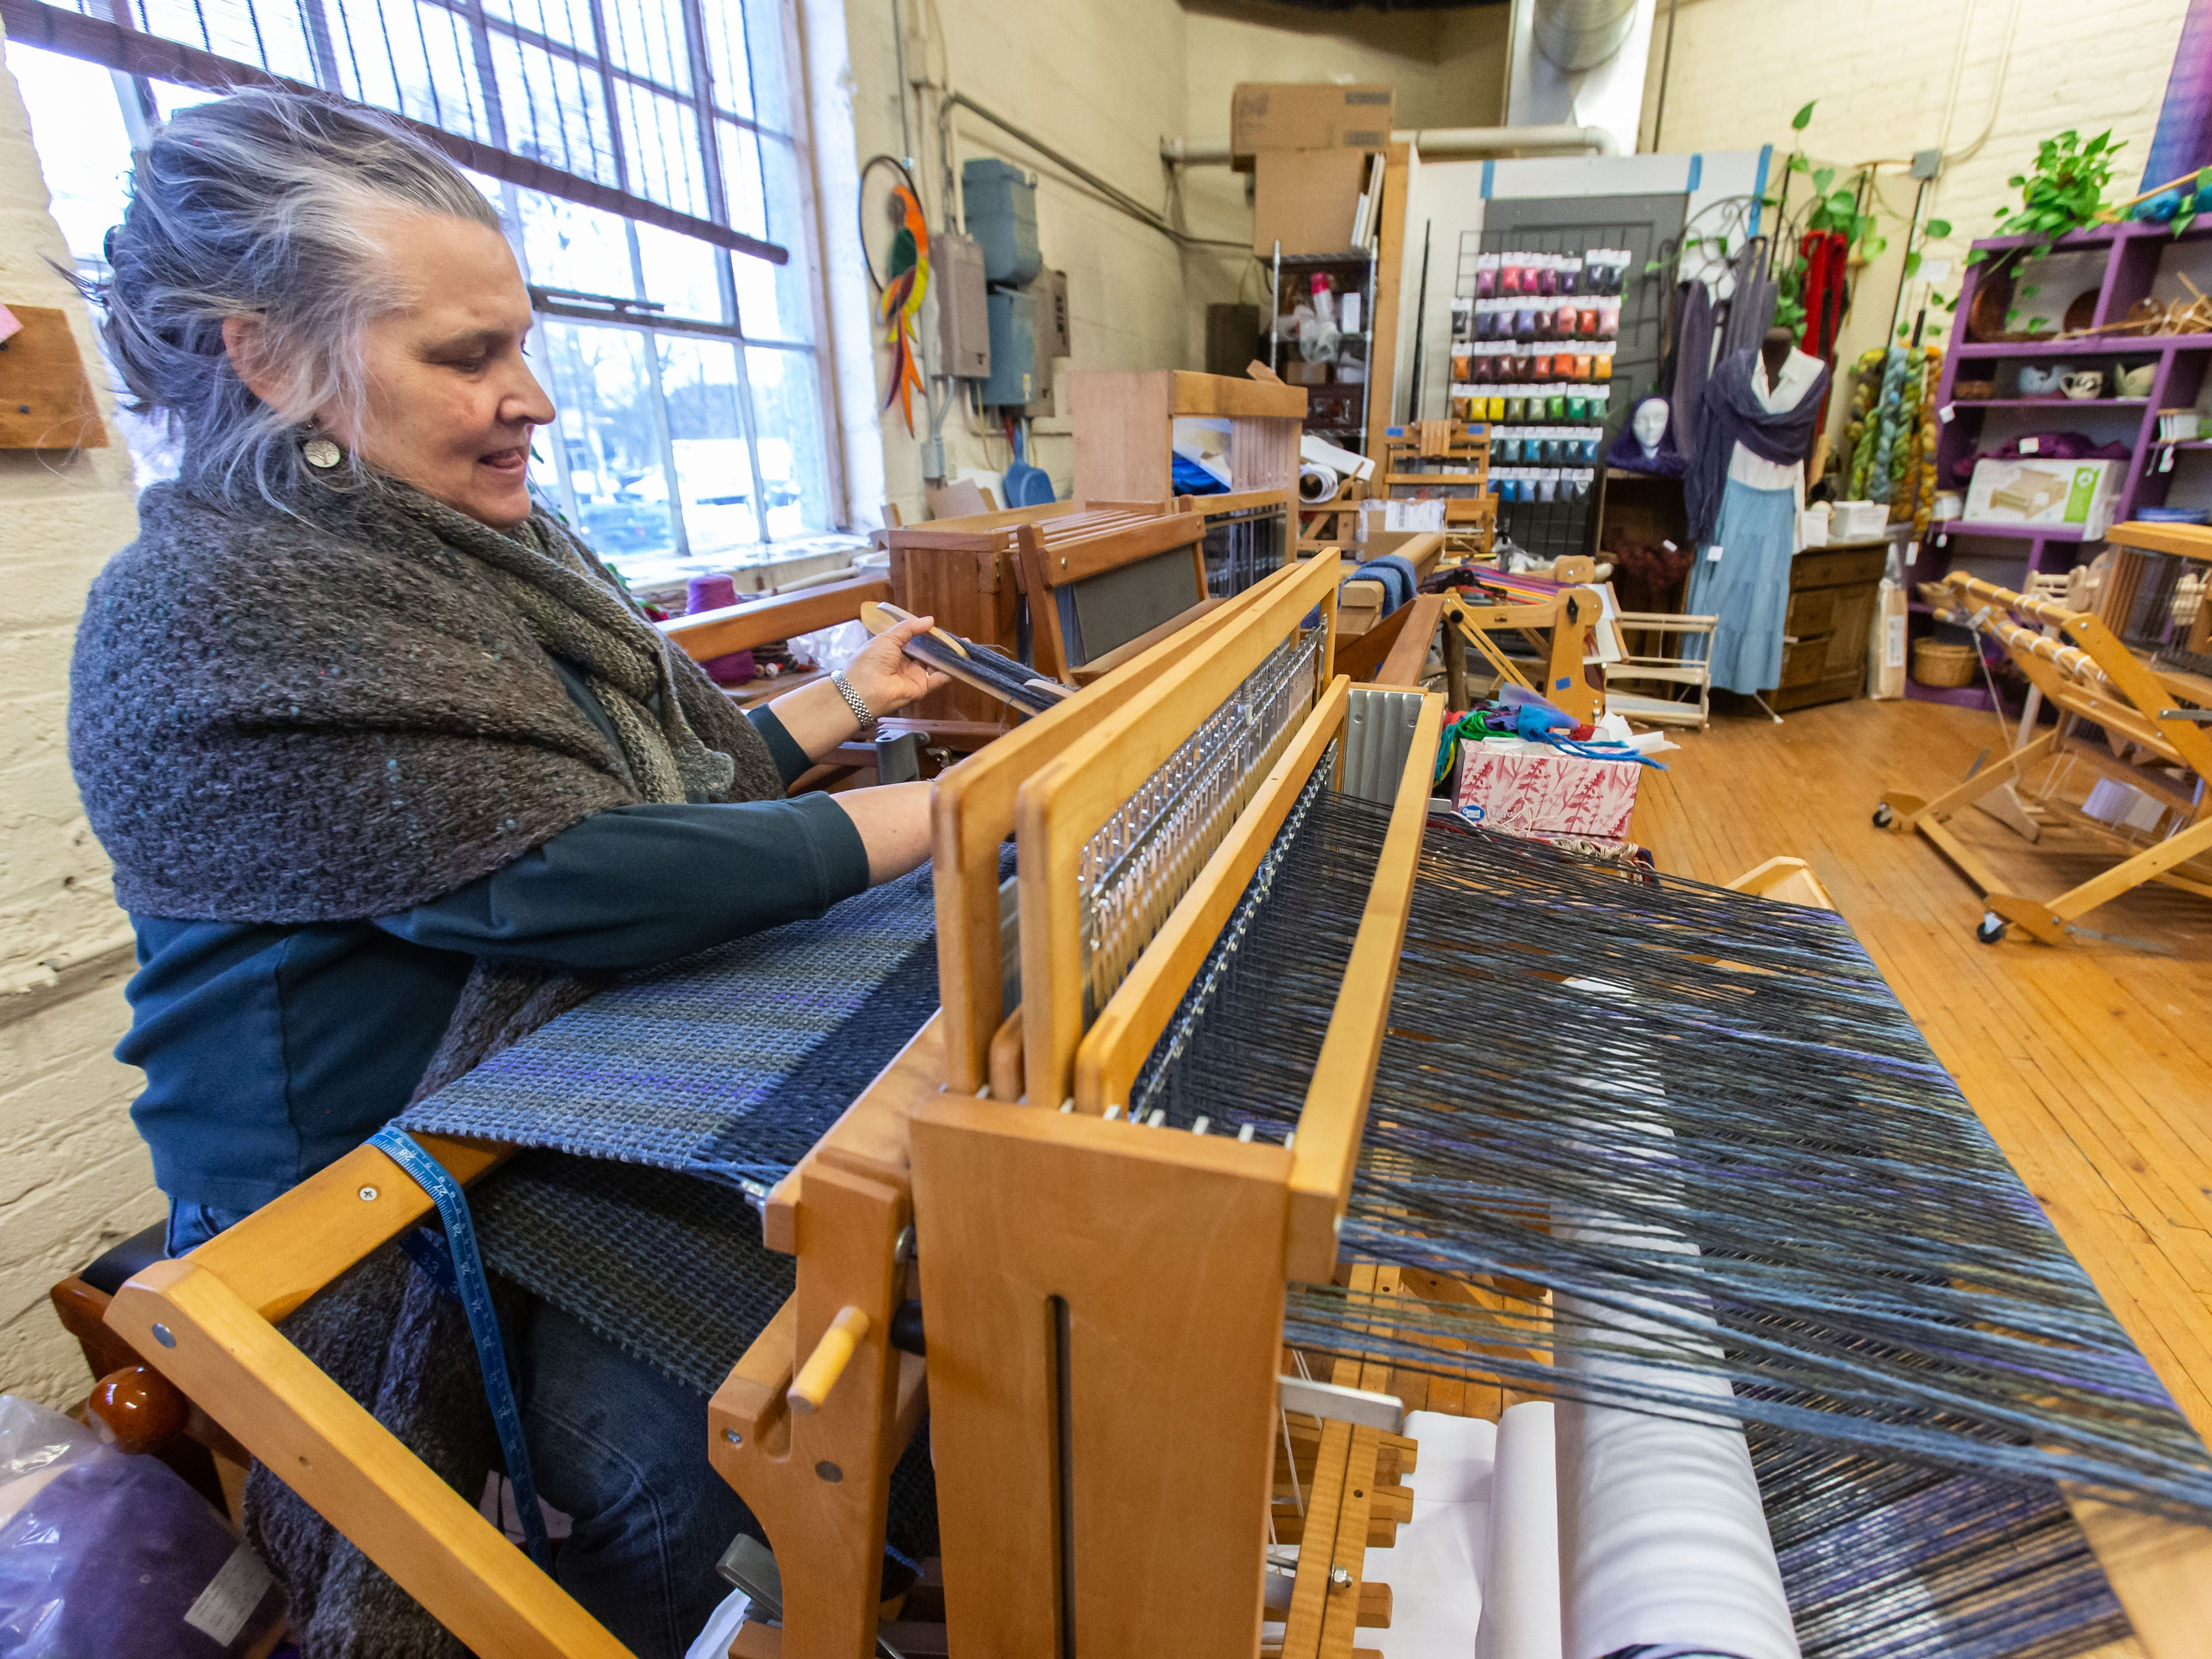 Nancy Wilson works on a loom at her Lost Art Fiber and Textile Studio located inside The Springs: Gallery/Studios in Waukesha during the Downtown Waukesha Art Crawl on Saturday, March 2, 2019.